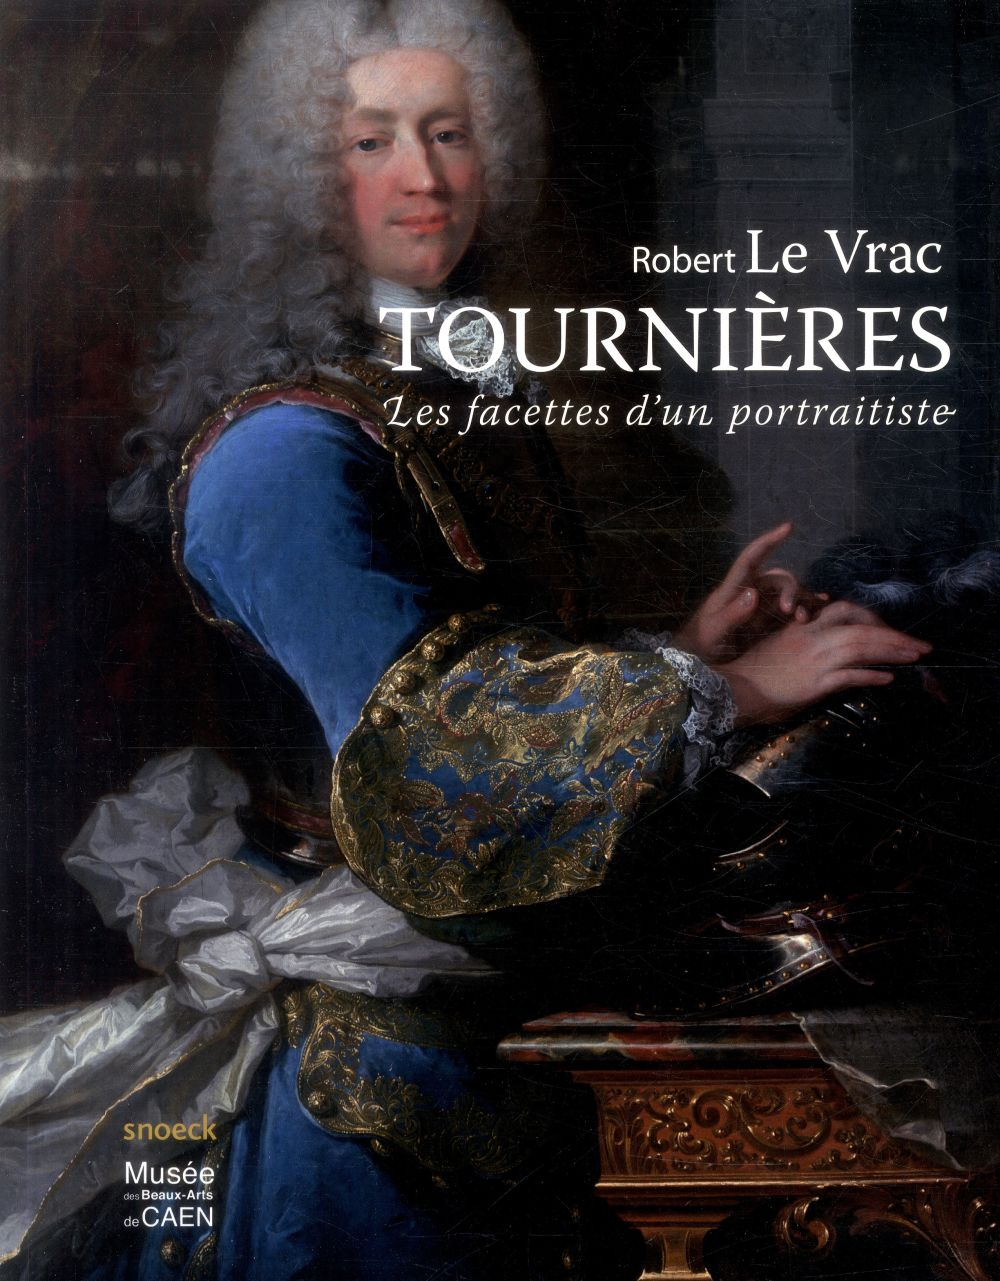 ROBERT LE VRAC TOURNIERES - MUSEE CAEN